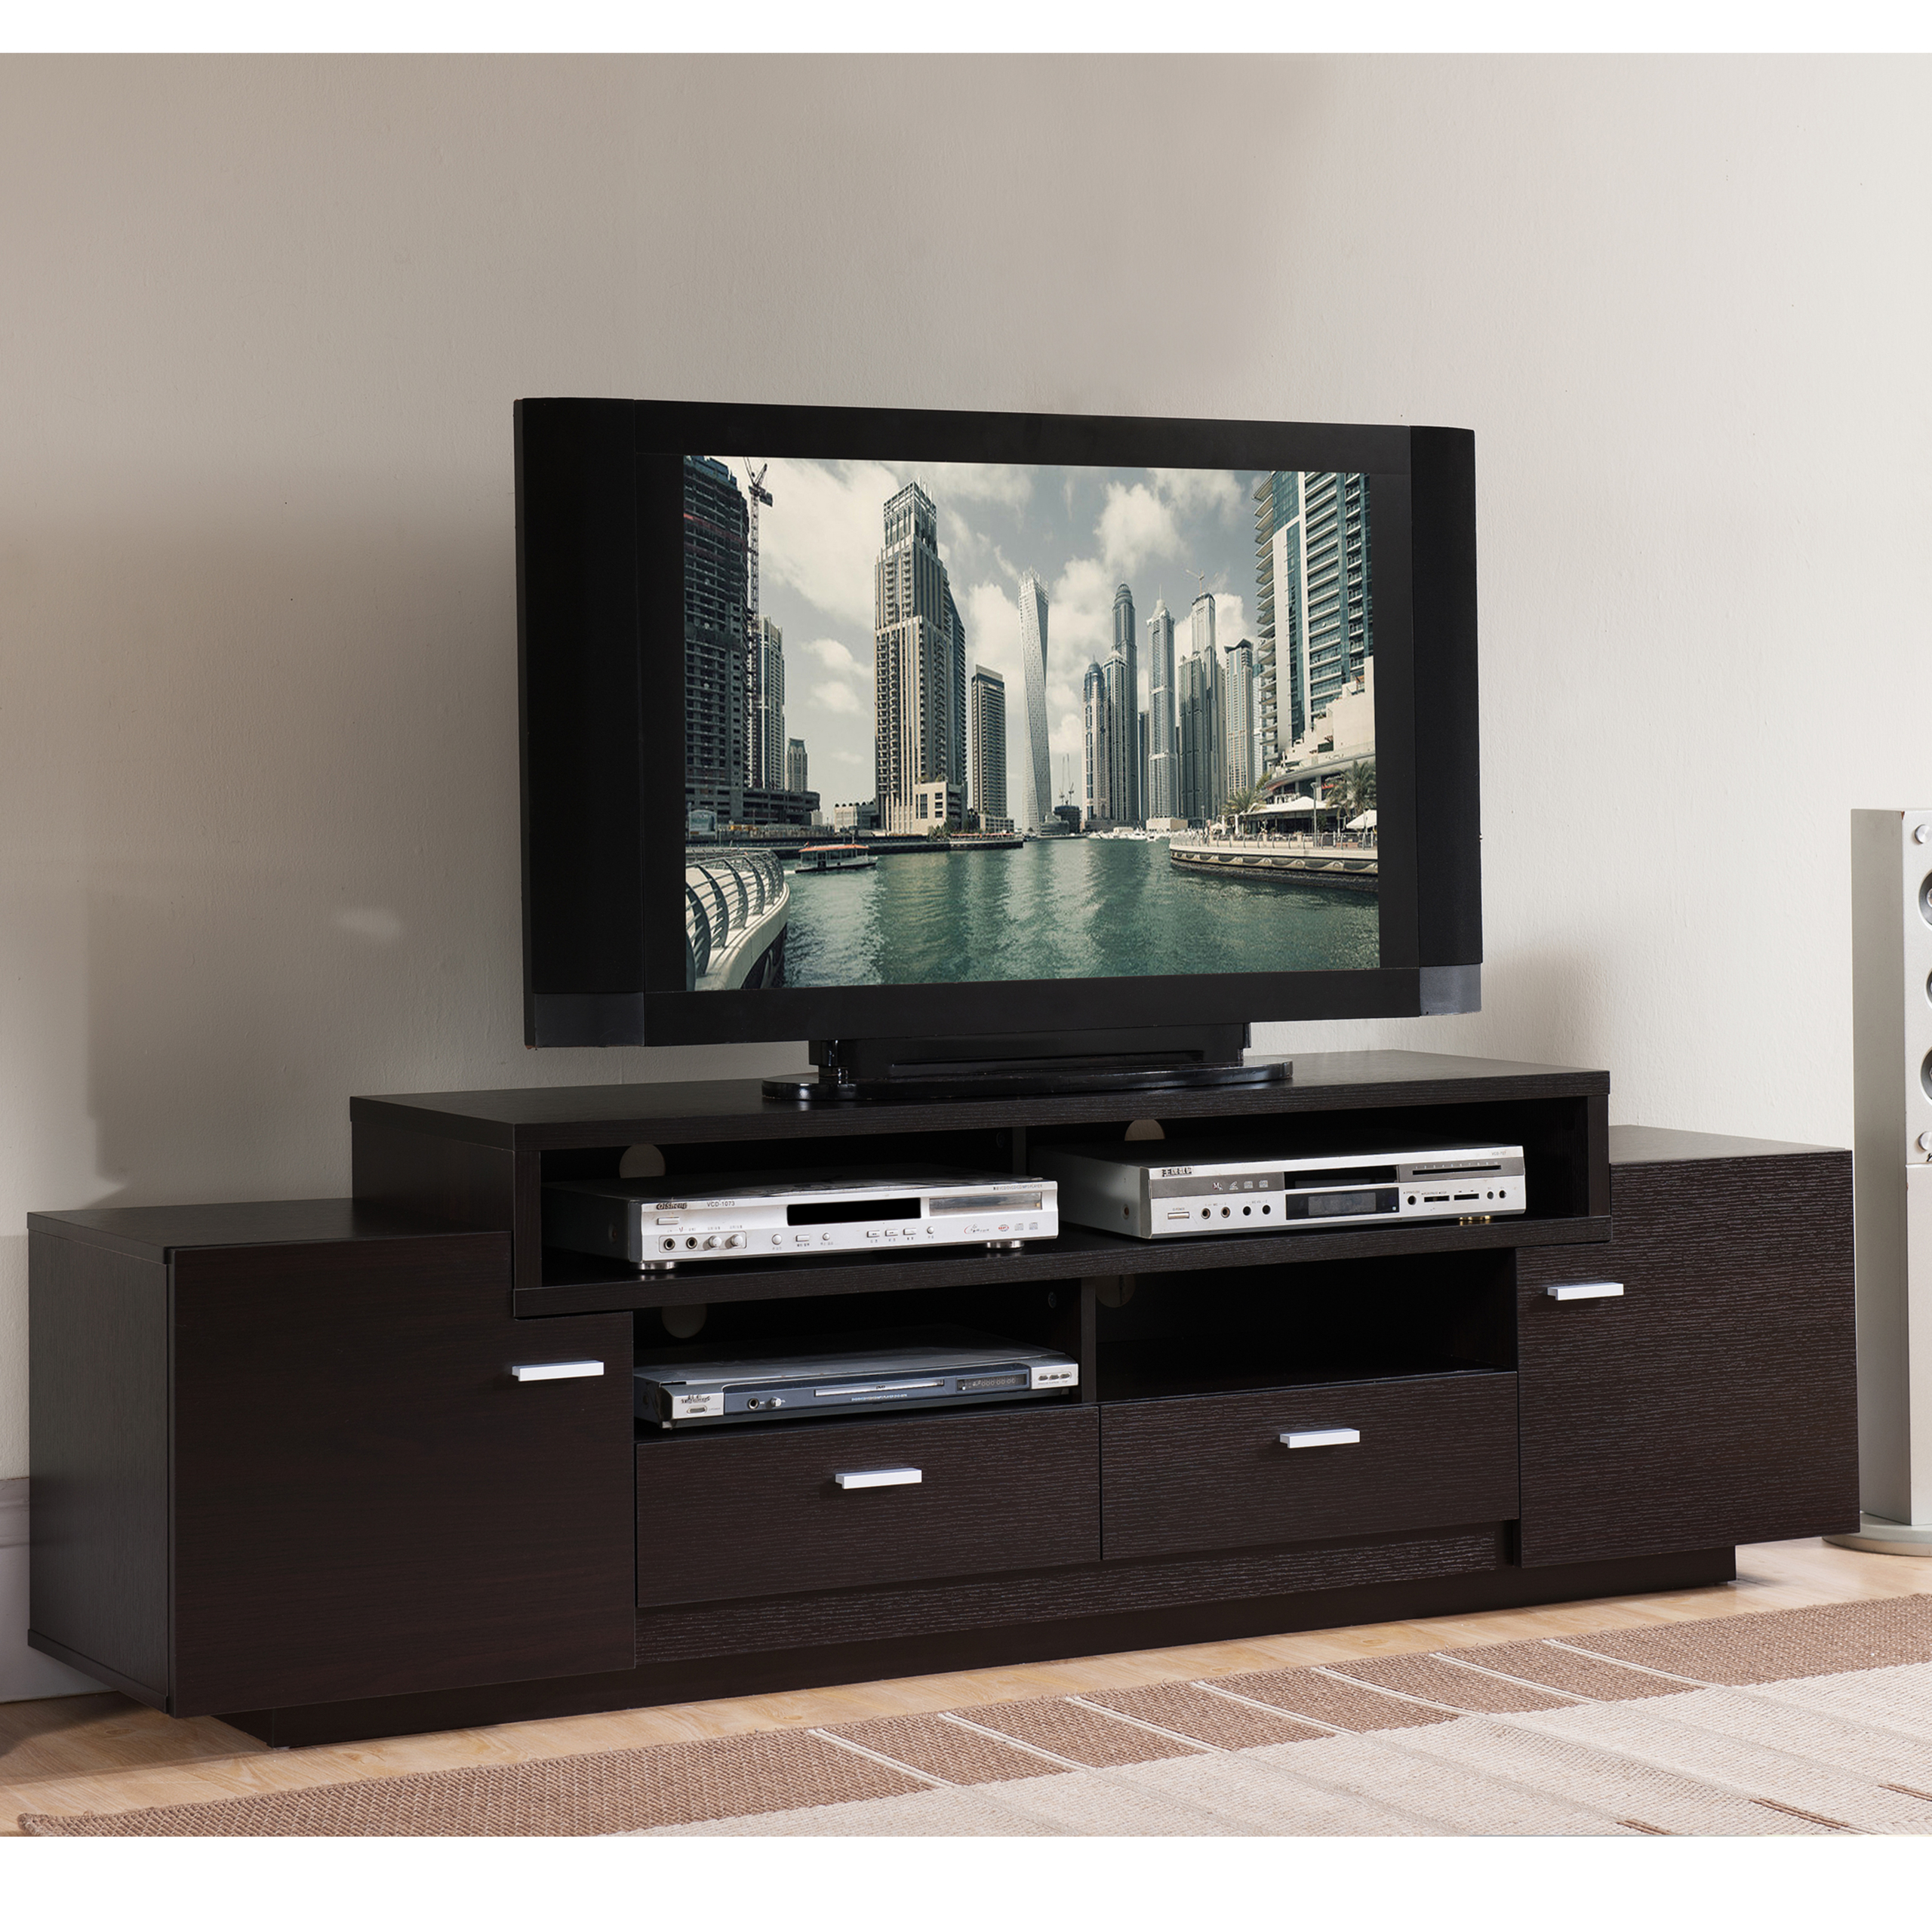 55 Flat Screen Tv Stand Entertainment Center Console Media Storage